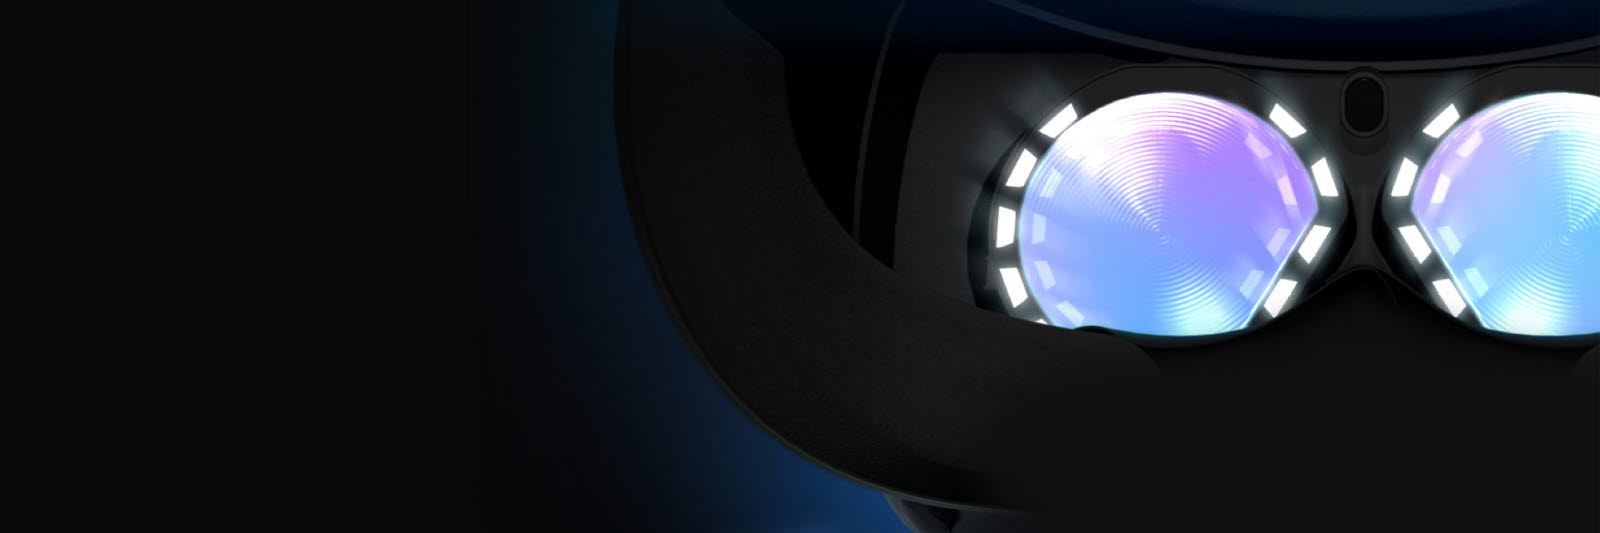 How the HTC VIVE Pro Eye helps shape the future of VR and